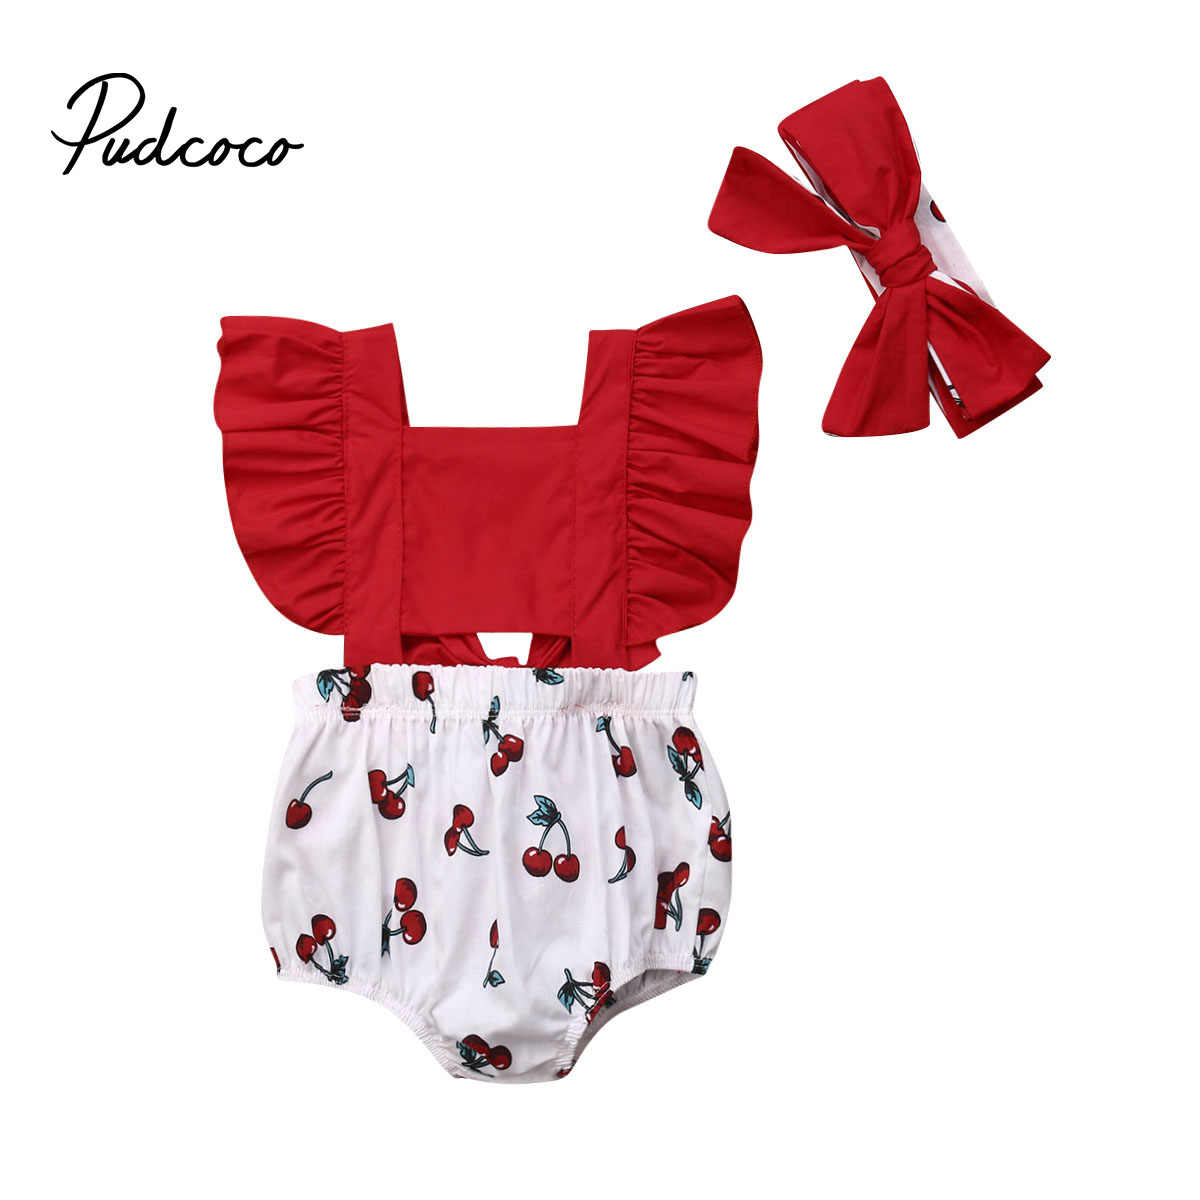 2020 Baby Zomer Kleding Kids Pasgeboren Baby Meisjes Ruches Romper Hollow Out One-Pieces + Hoofdband Cherry Print Jumpsuit outfit